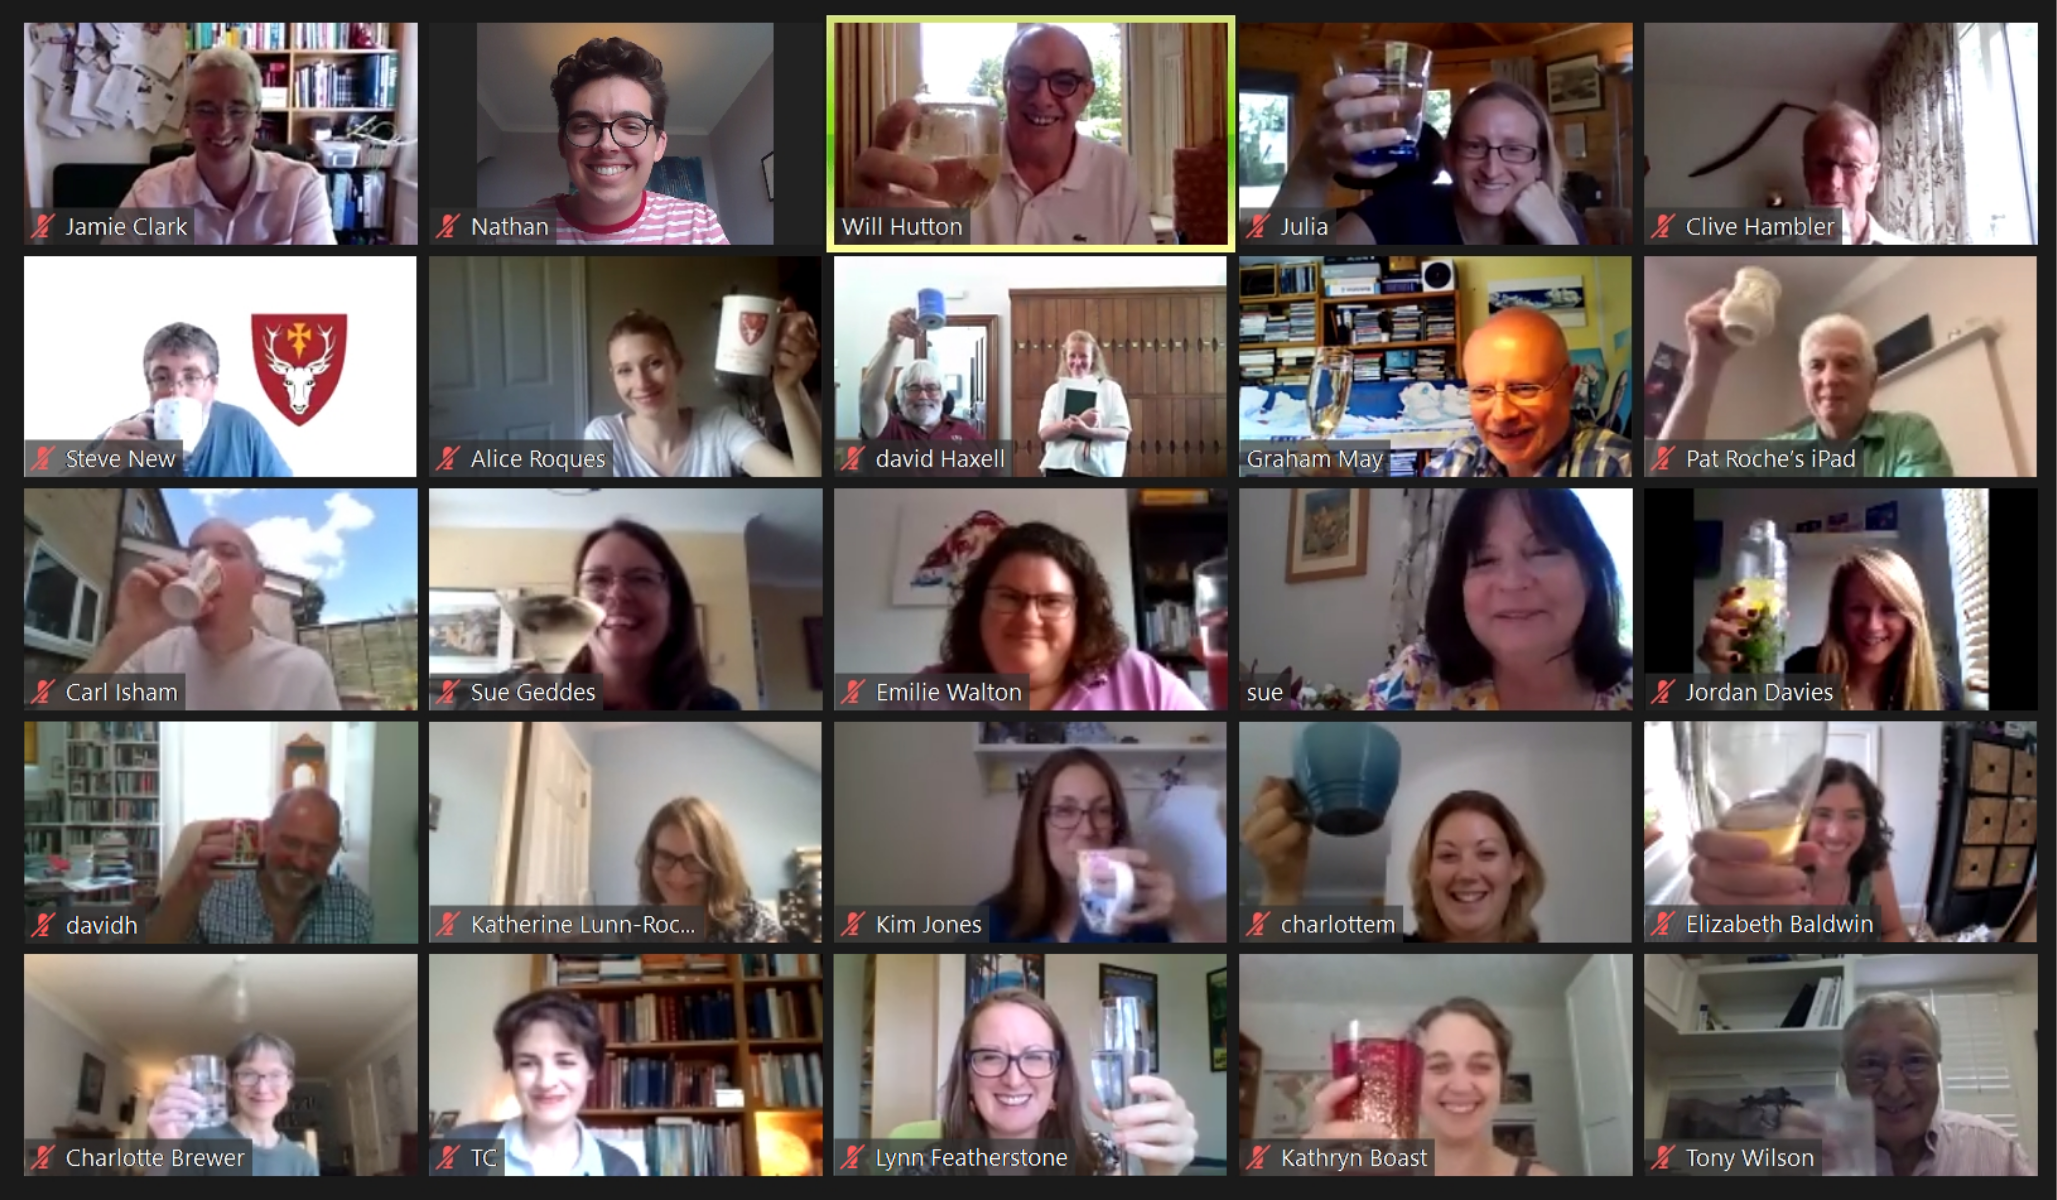 Screenshot of Zoom call with participants raising glasses